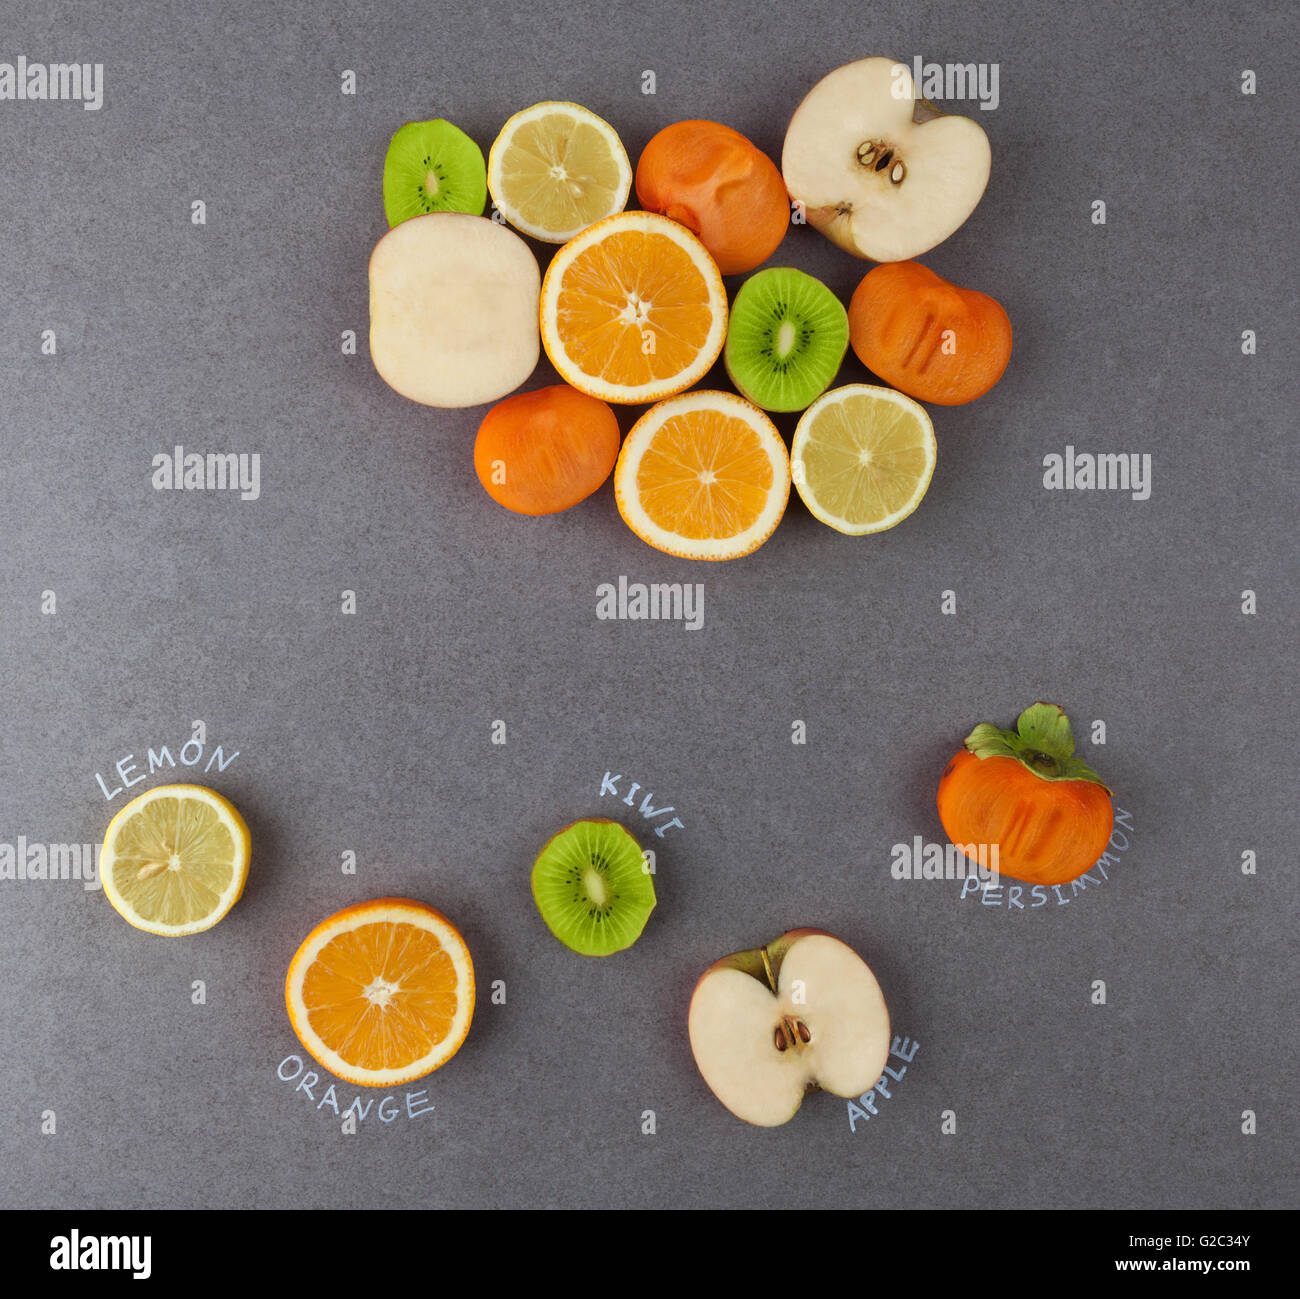 Slices of fruits with handwritten lables on stone surface. Lemon, orange, kiwi, apple, persimmon. Top view - Stock Image